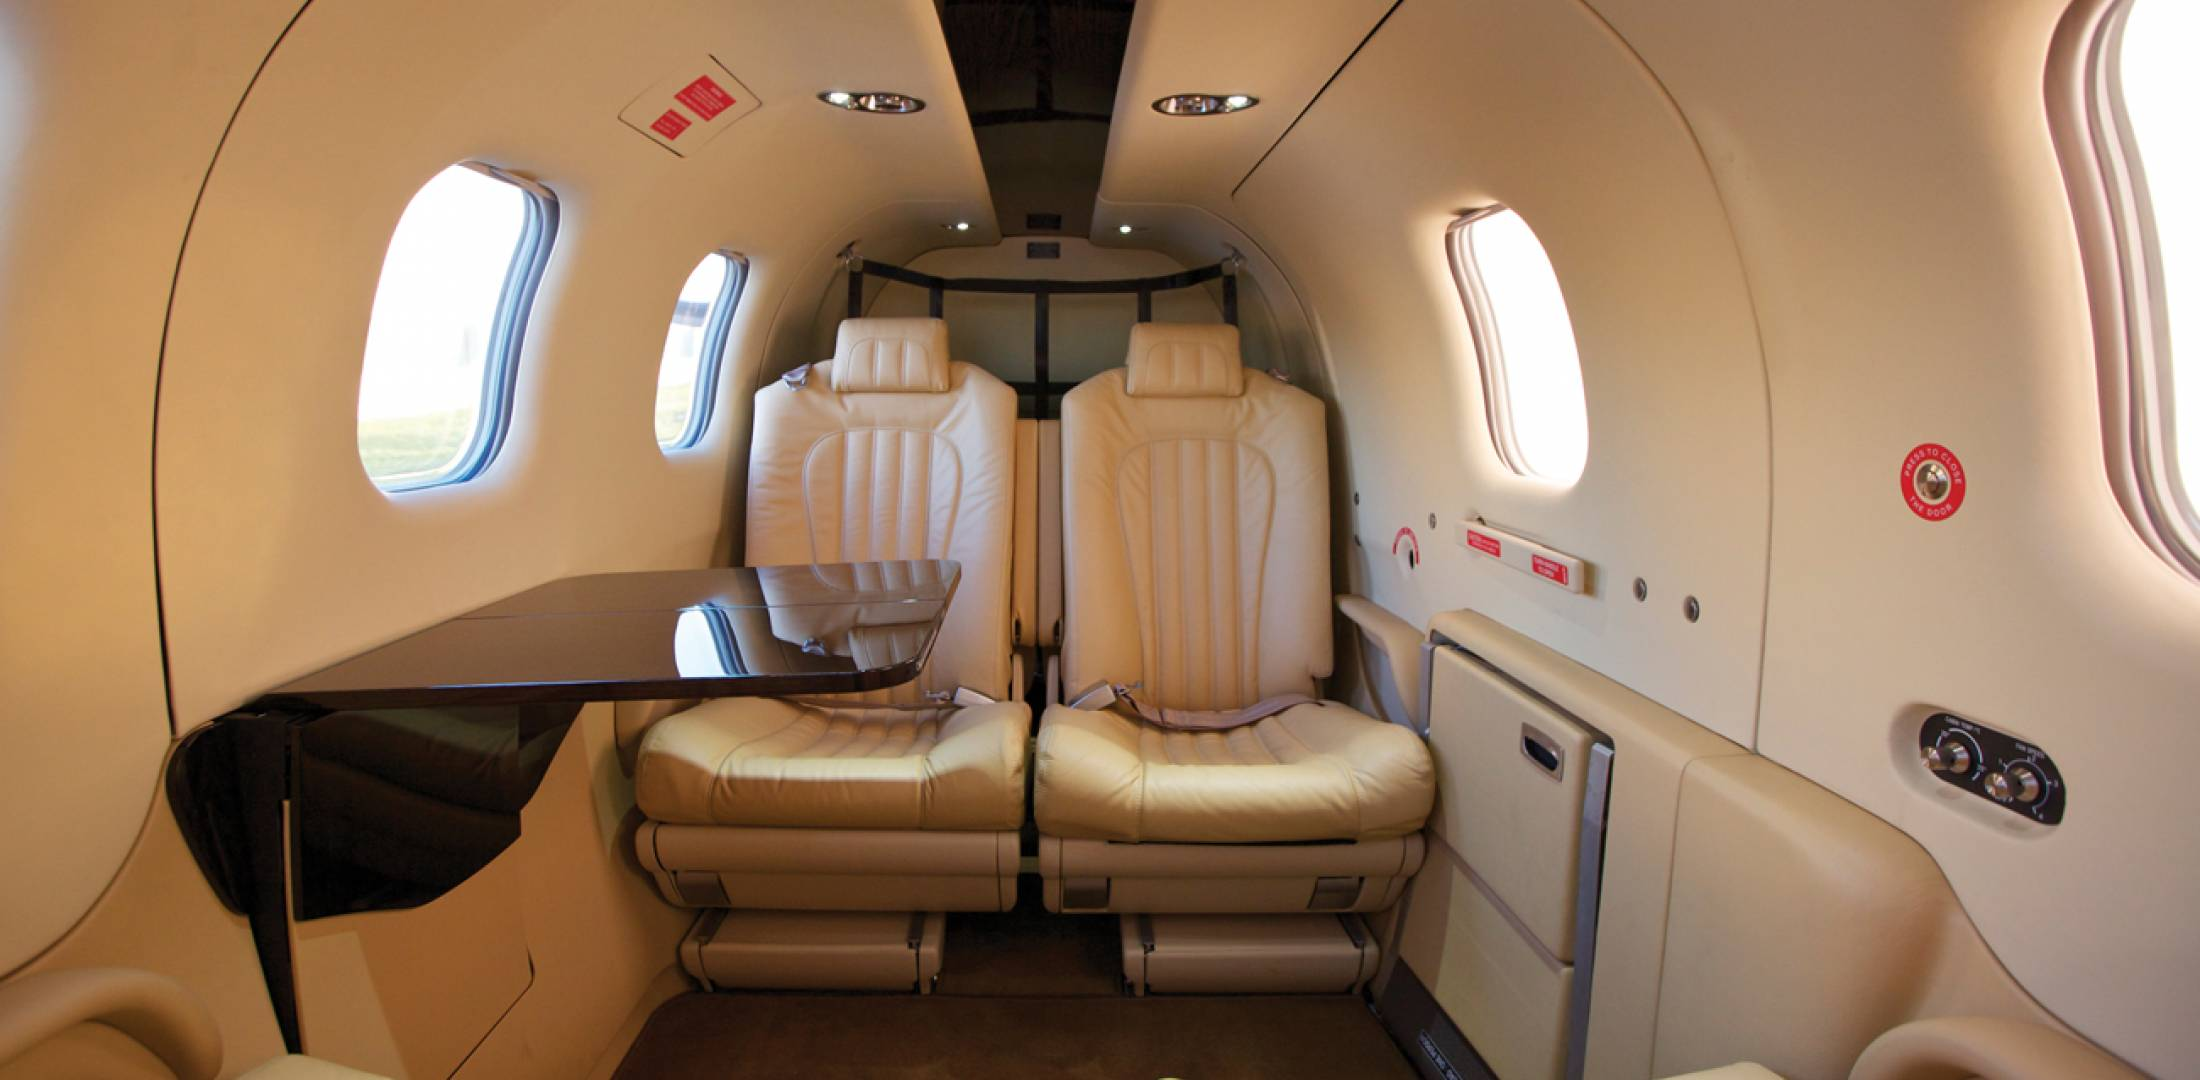 Interior options for the TBM 900 include leather seats with adjustable backrests and folding armrests, leather upper side panels and gold or brushed stainless trimming of individual fresh-air vents and reading light ring. Shown here is the Moorea sand interior.